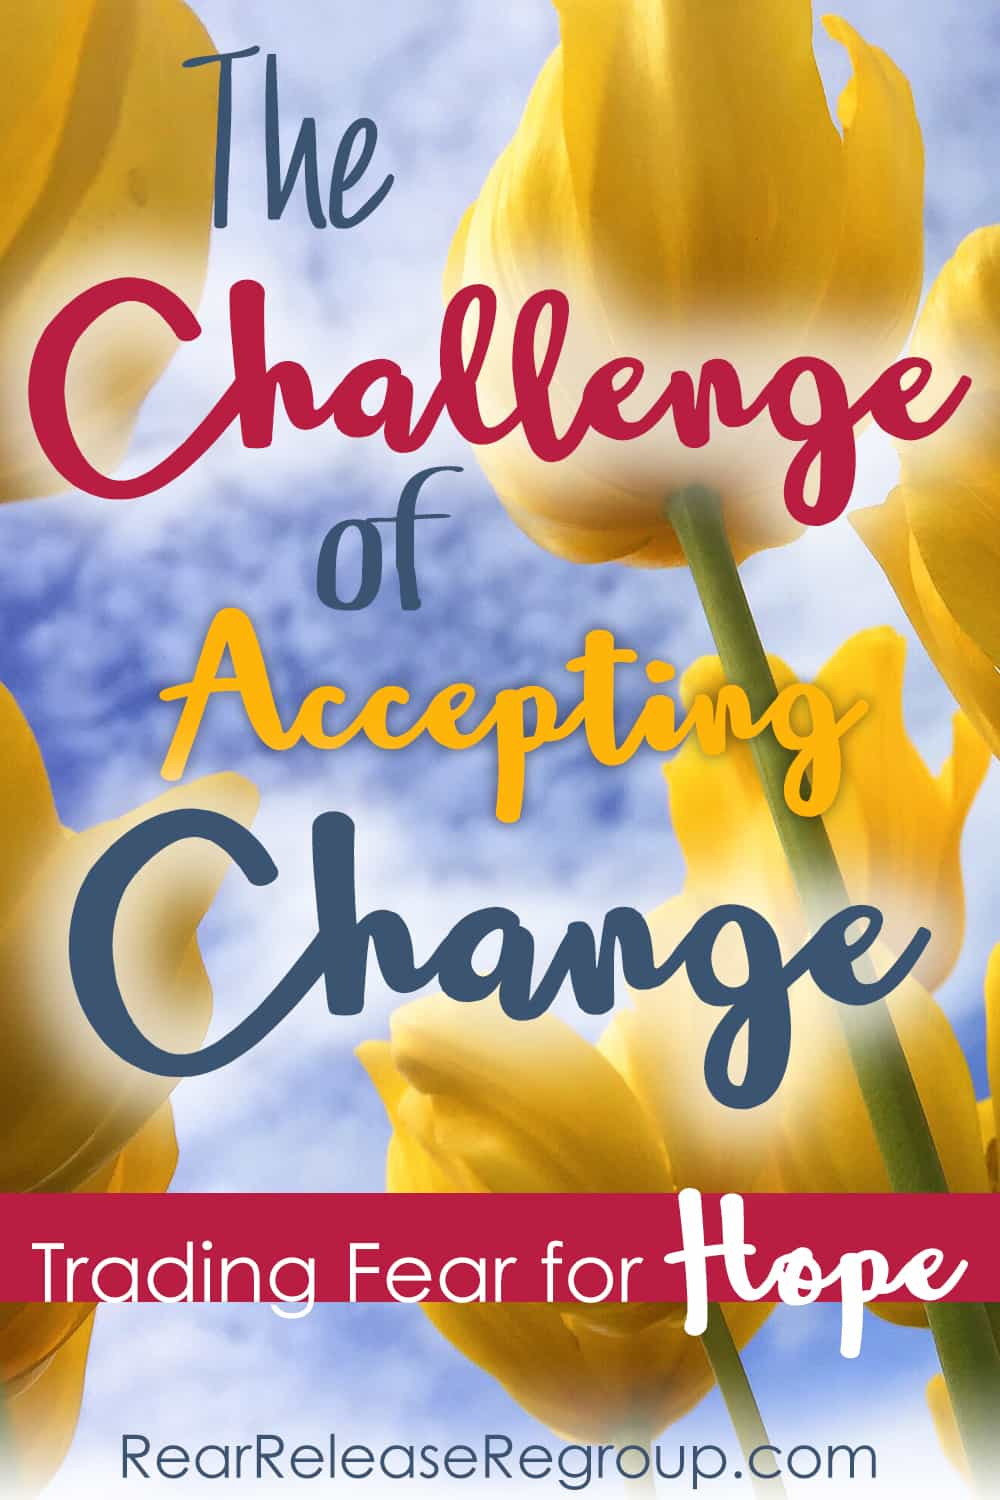 The challenge of accepting change - trading fear for hope; through acceptance in transitions God has freedom to grow faith into hope.